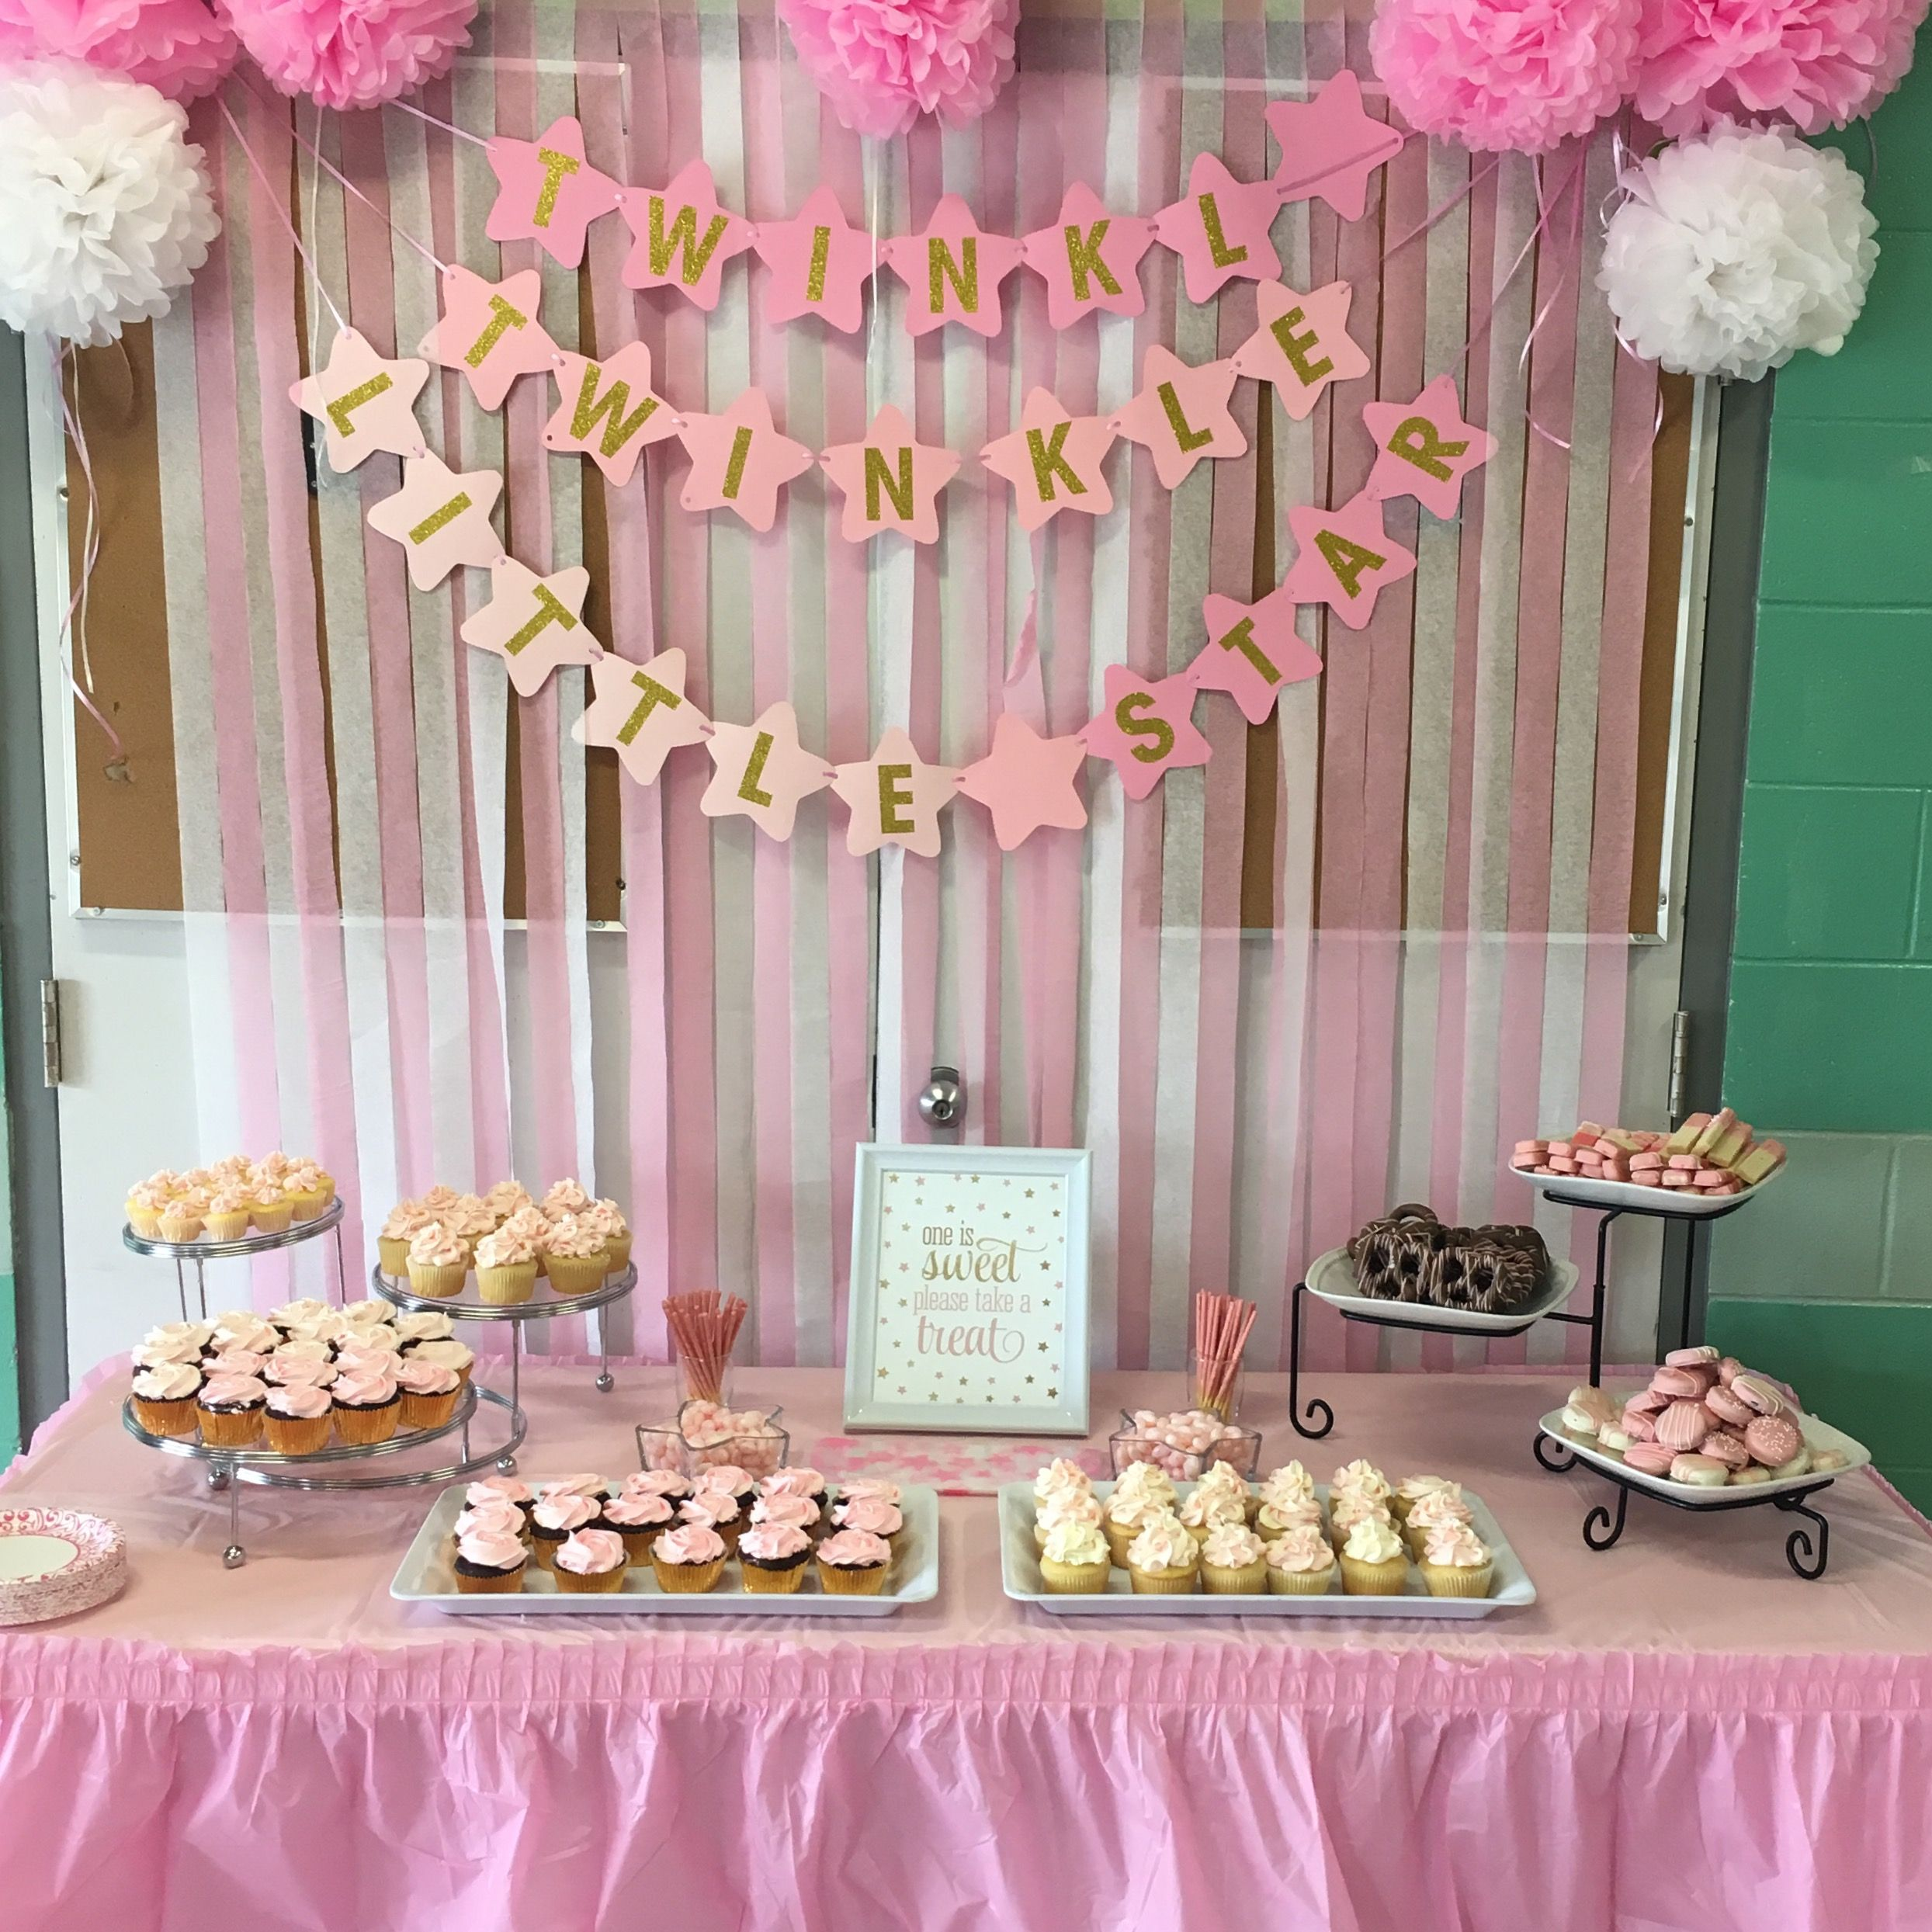 The Centre Of The Party Room: A Pink And Gold Themed Sweet